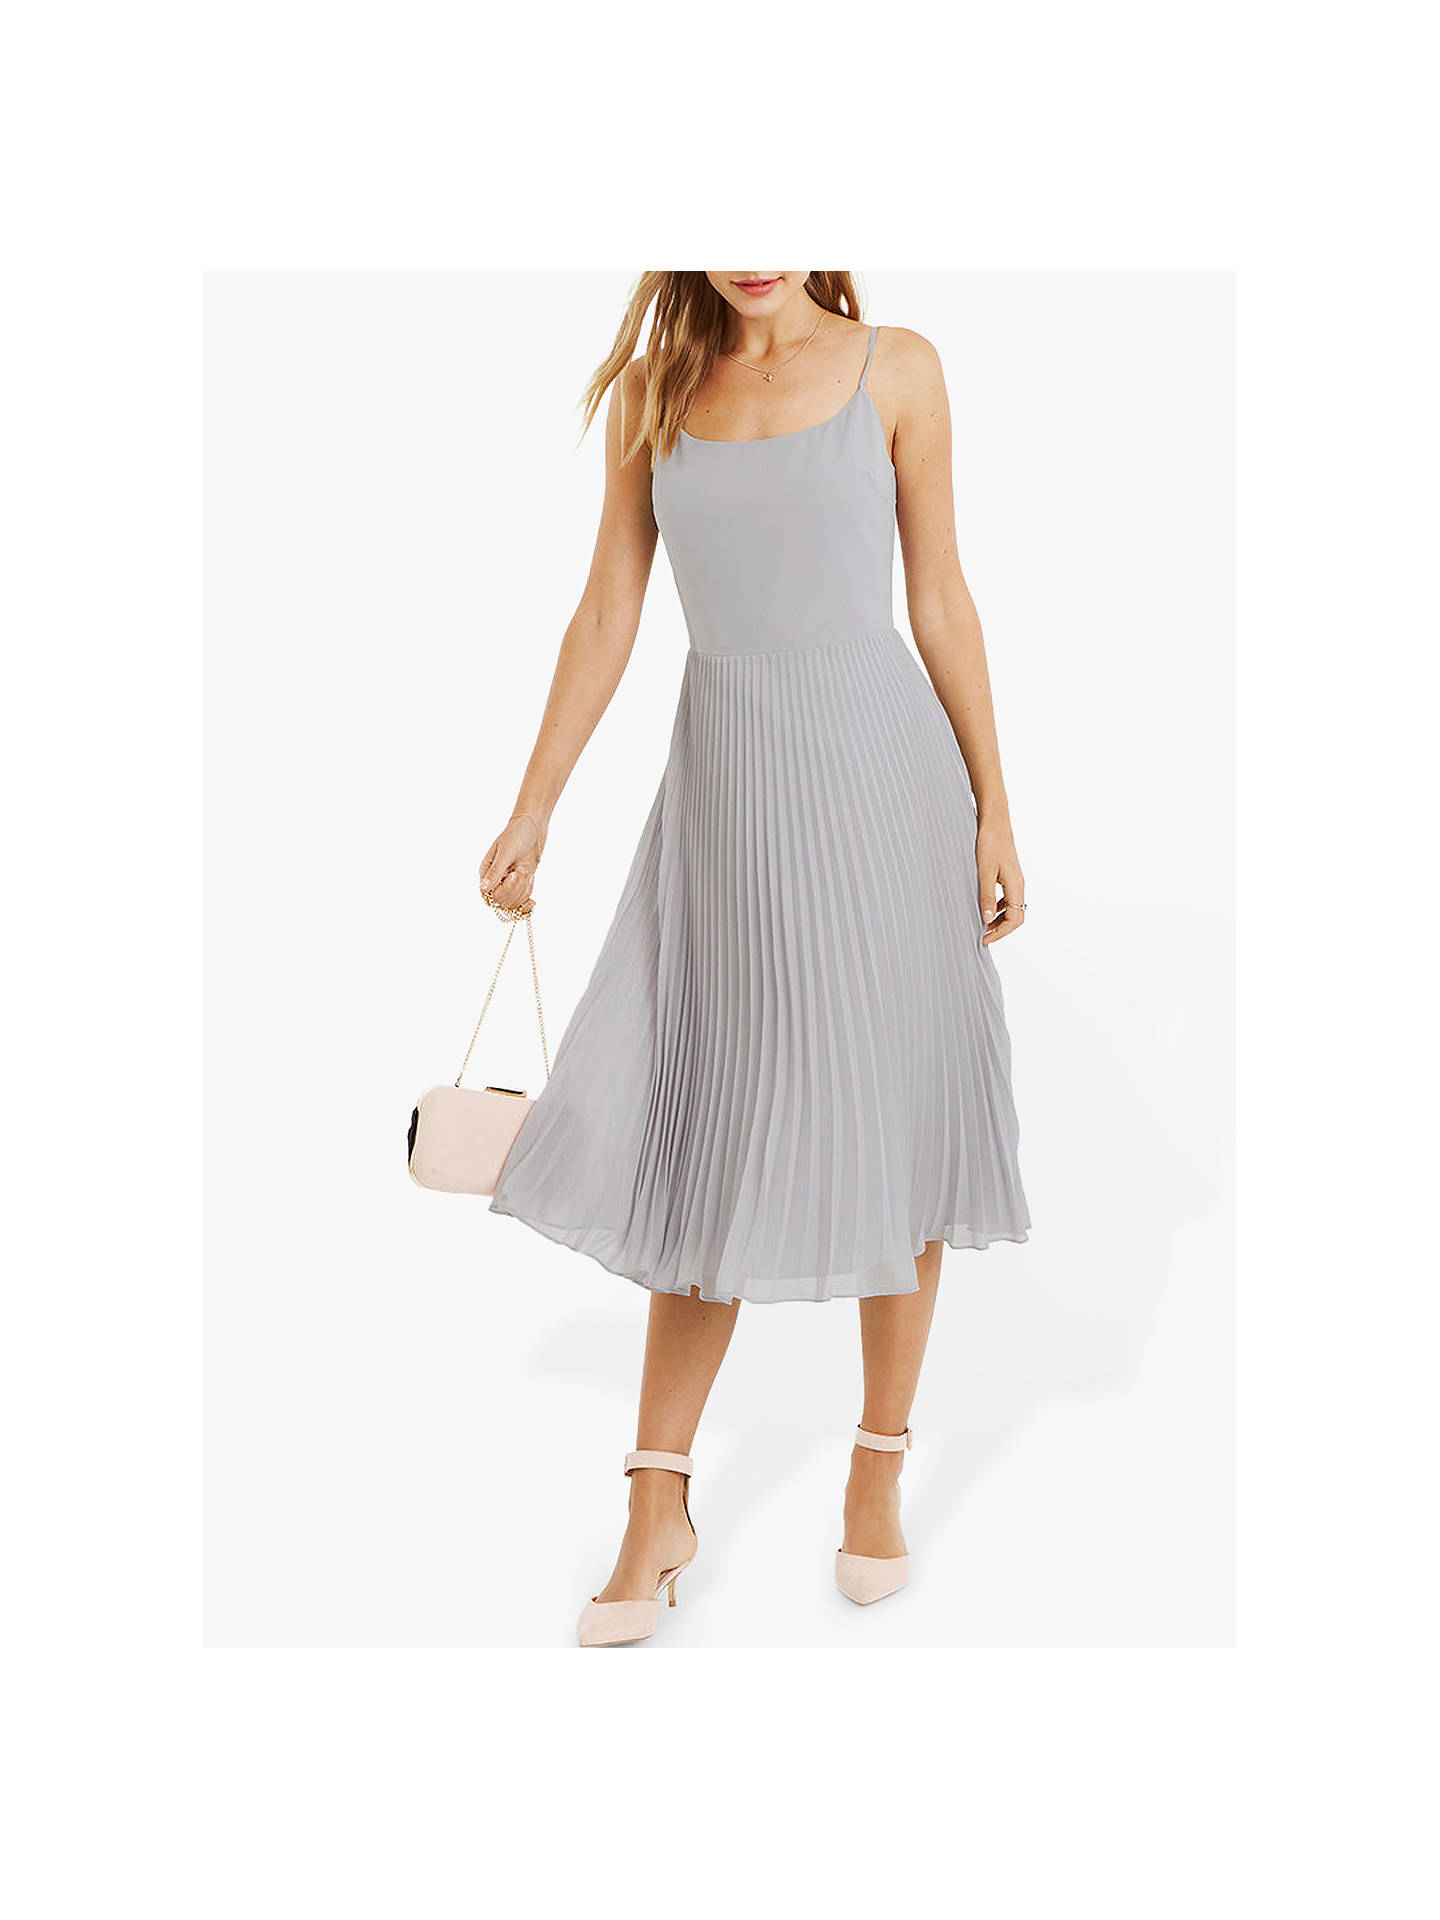 46aa429eff63 ... Buy Oasis Lace Top Midi Dress, Pale Grey, 12L Online at johnlewis.com  ...